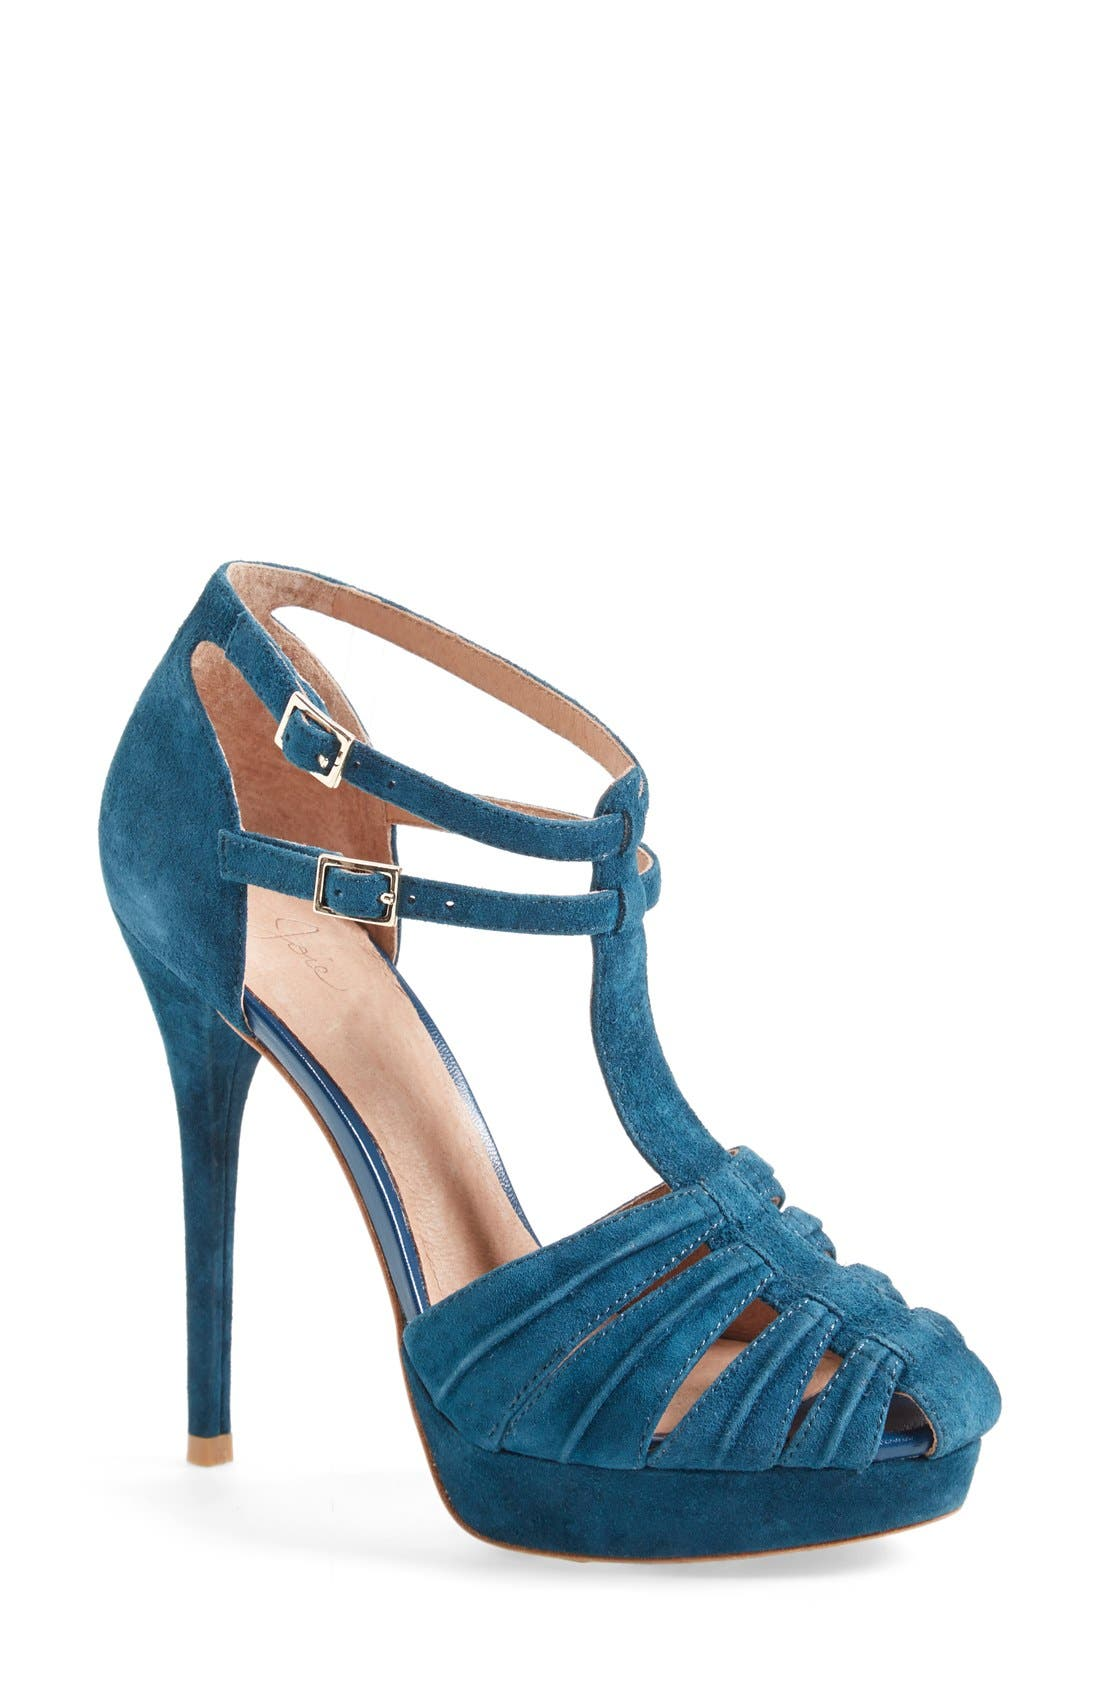 Alternate Image 1 Selected - Joie 'Rexanne' Platform Sandal (Women)